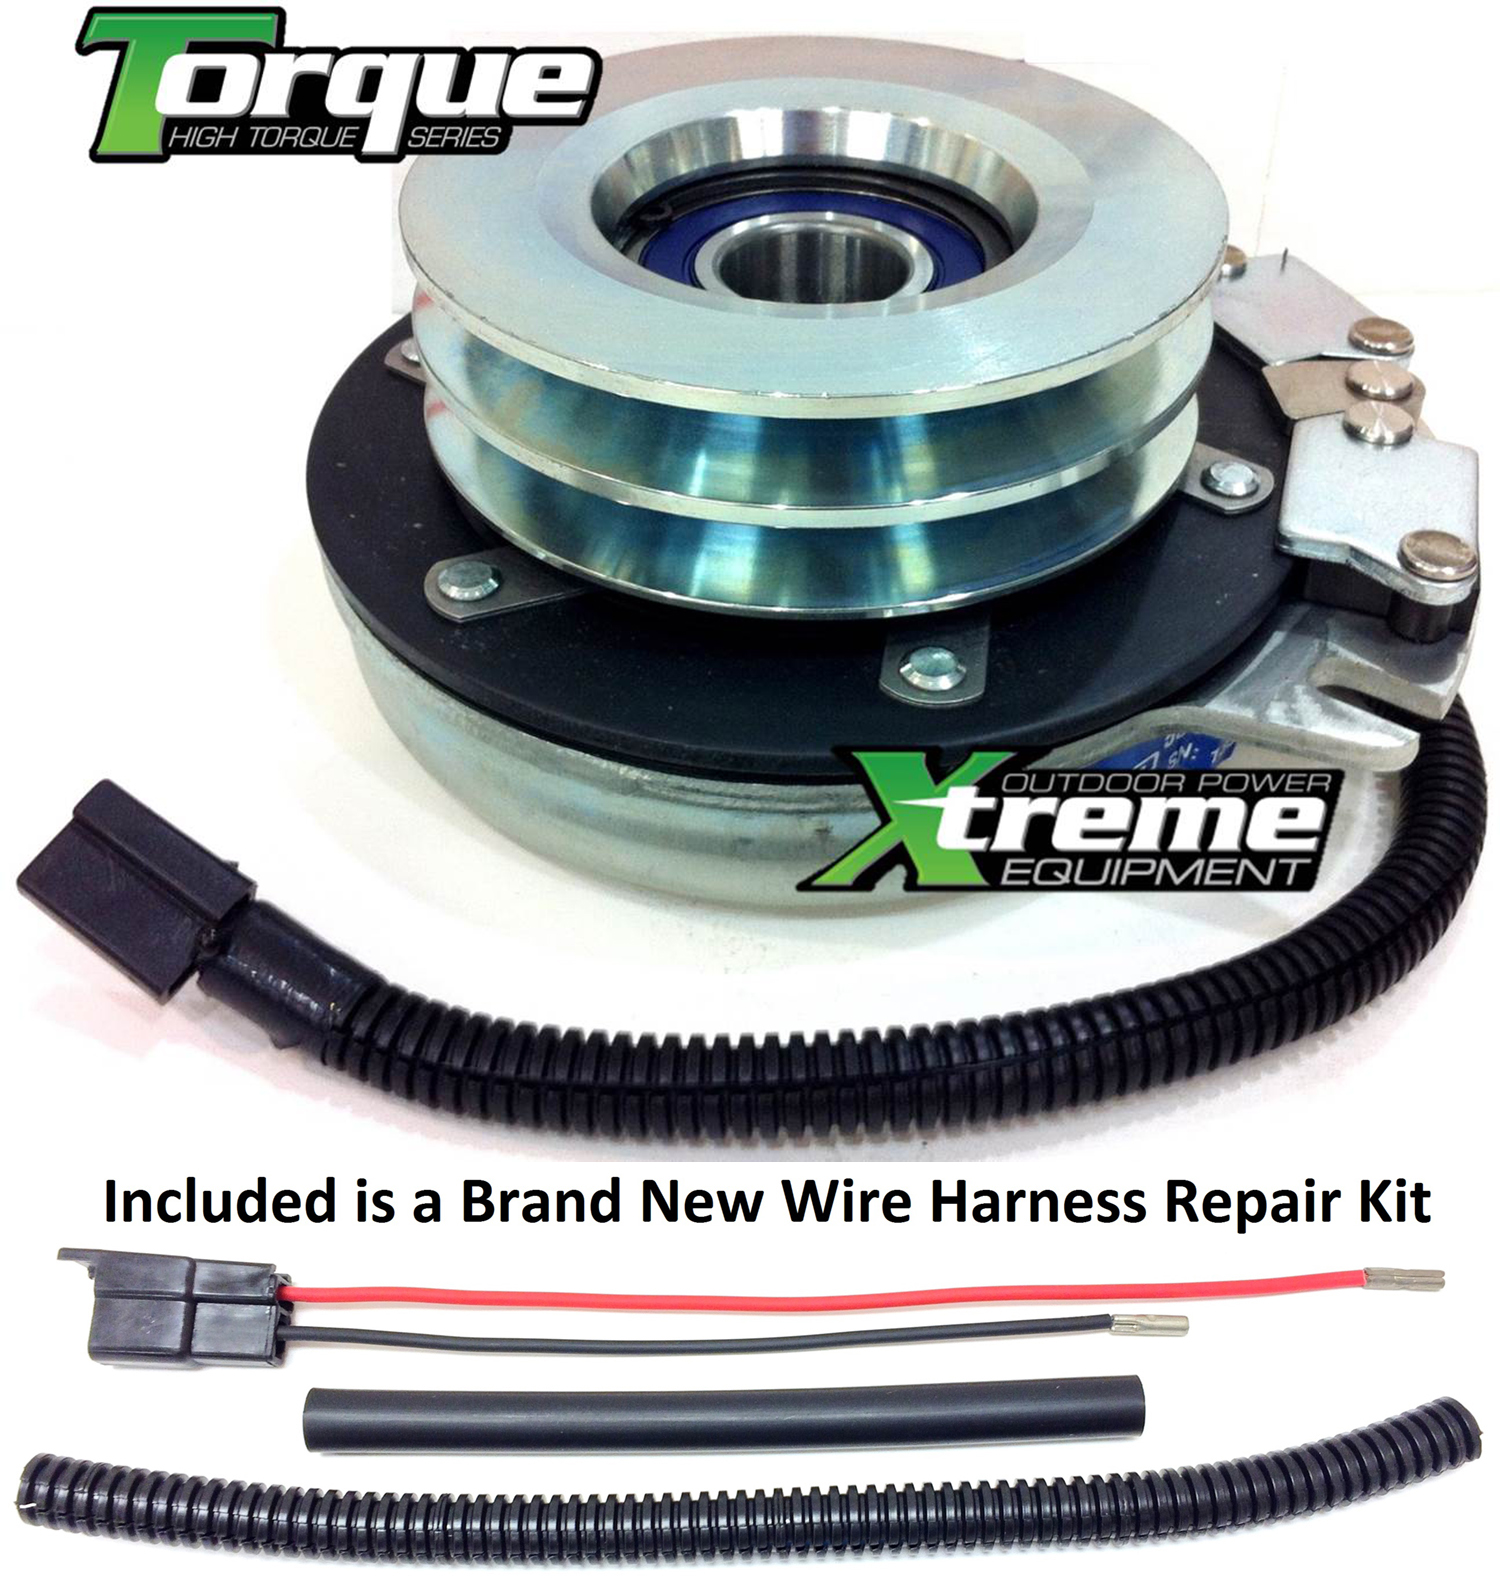 Bundle - 2 items: PTO Electric Blade Clutch, Wire Harness Repair Kit.  Replaces Warner 5219-10 521910 Woods PTO Clutch - w/ Wire Harness Repair Kit  !